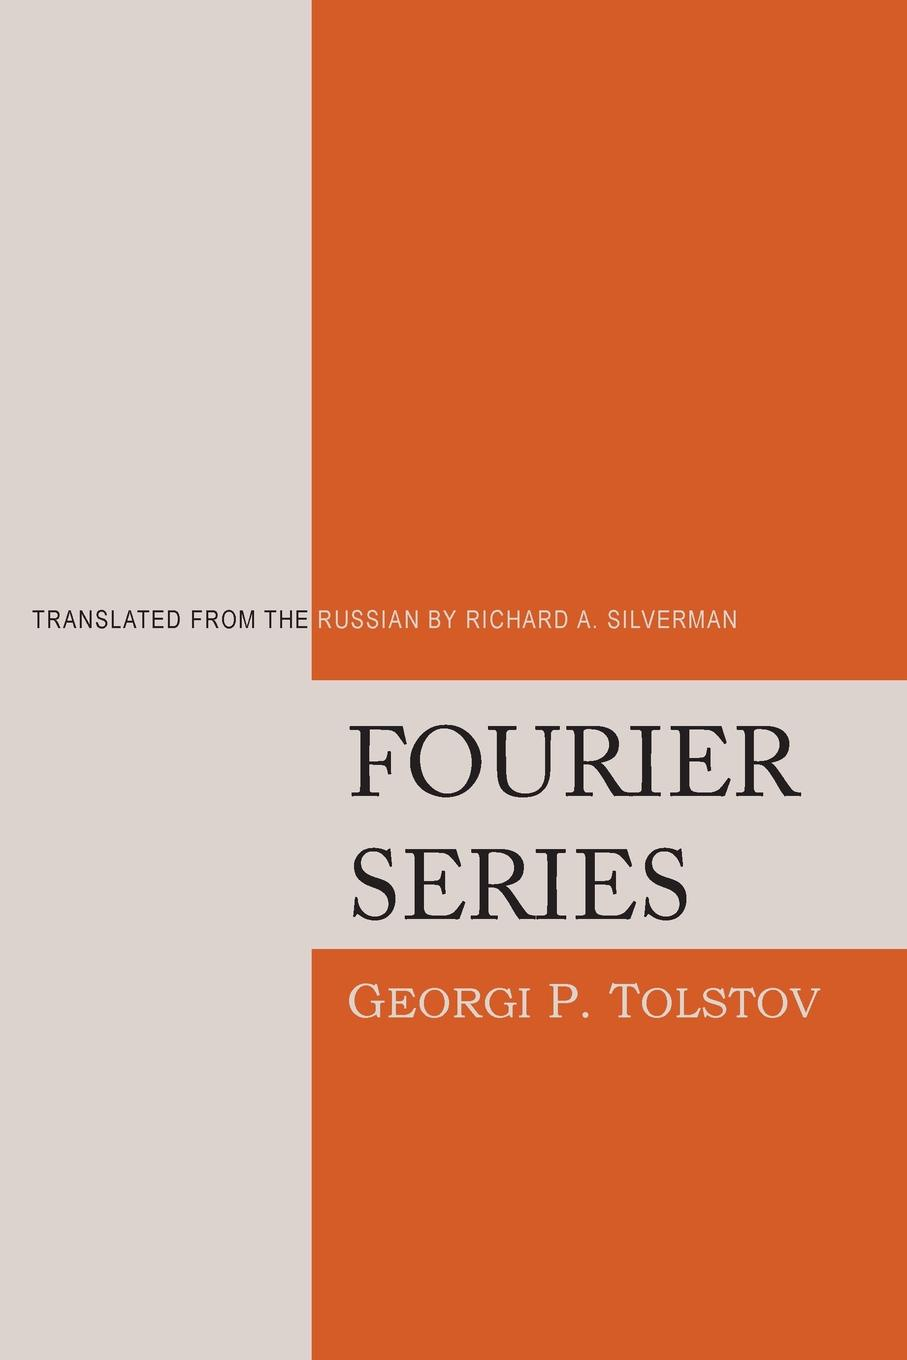 Georgi P. Tolstov, Richard A. Silverman Fourier Series andrei bourchtein counterexamples on uniform convergence sequences series functions and integrals